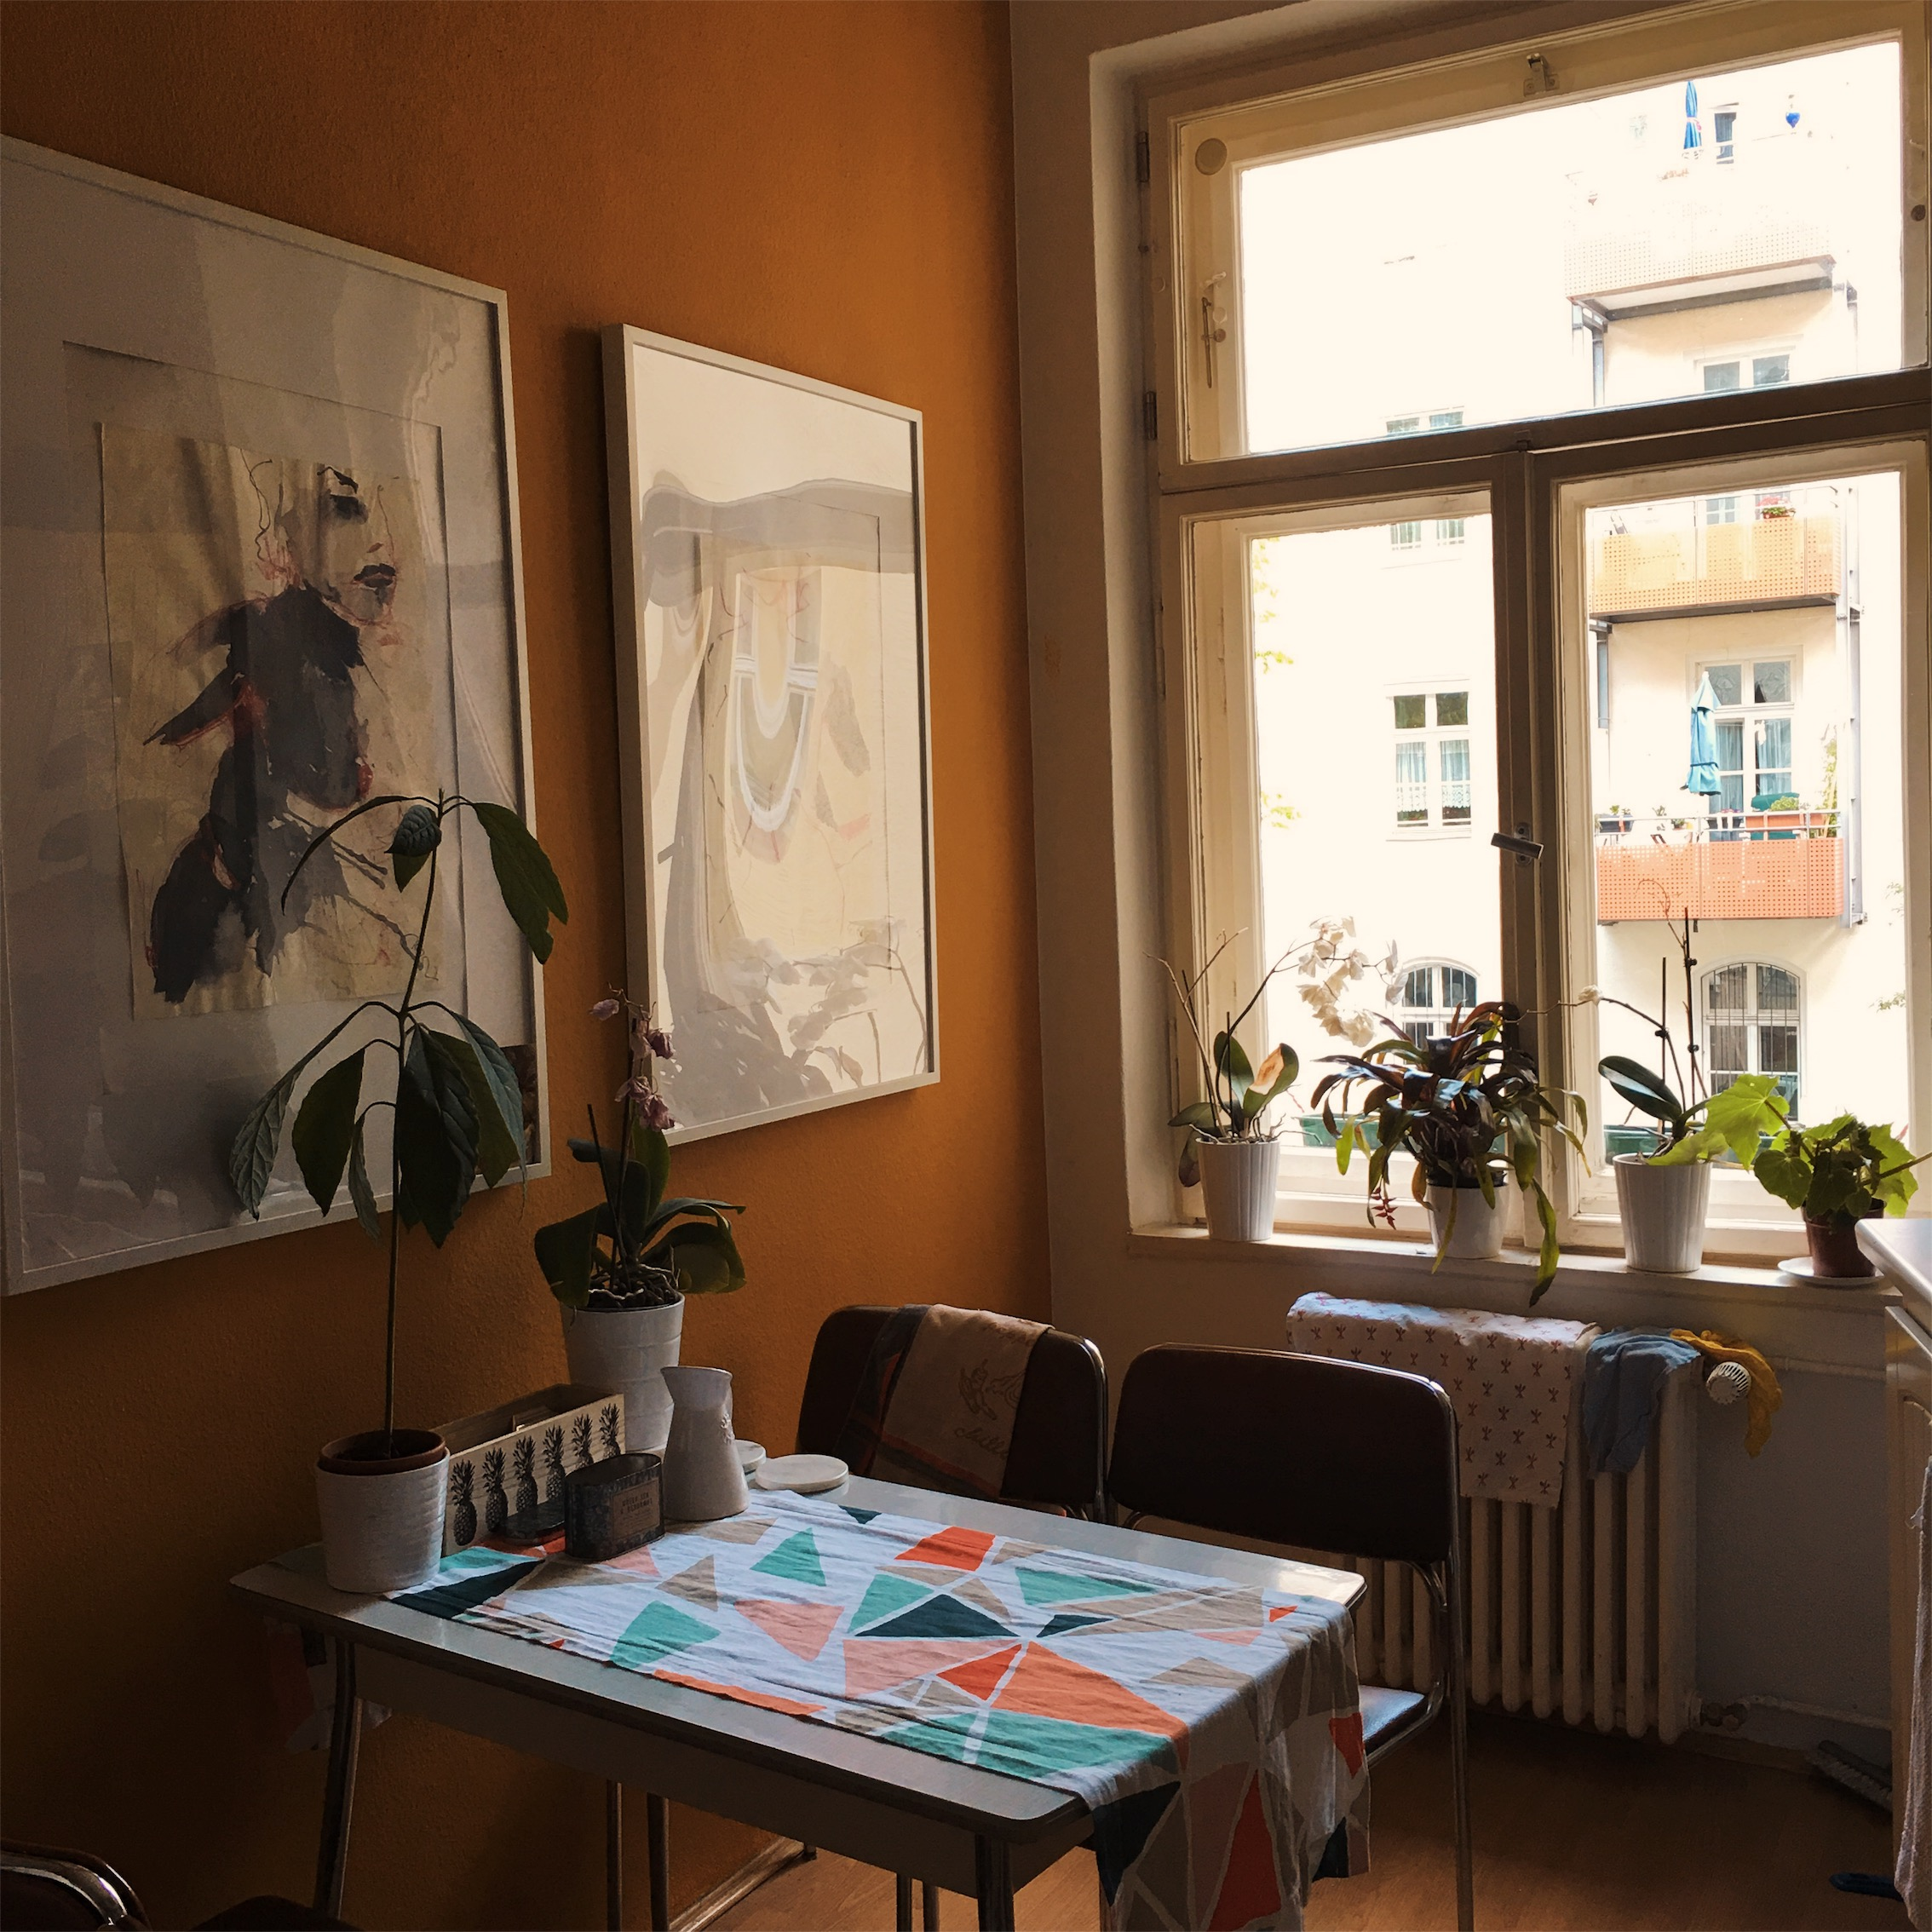 Here's what a typical German apartment looks like. Every one I've been in has been incredibly hipster and a little bit cold… Fun fact: German apartments usually don't come furnished. Like, you have to bring your own kitchen sink and light bulbs, so don't forget to budget this in if you move here.